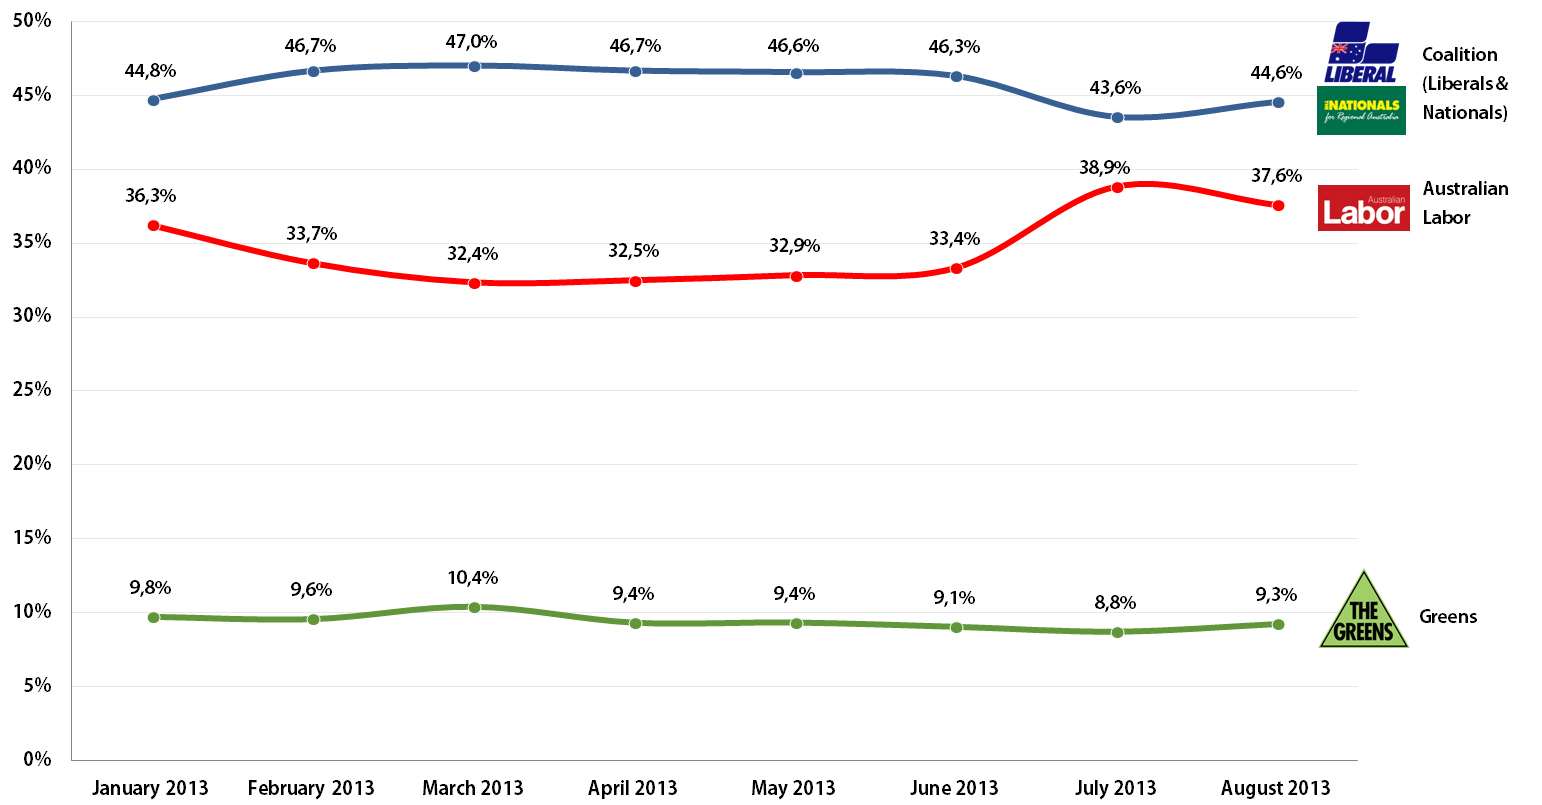 Australian Federal Election: Voting Intention Trends, January-August 2013